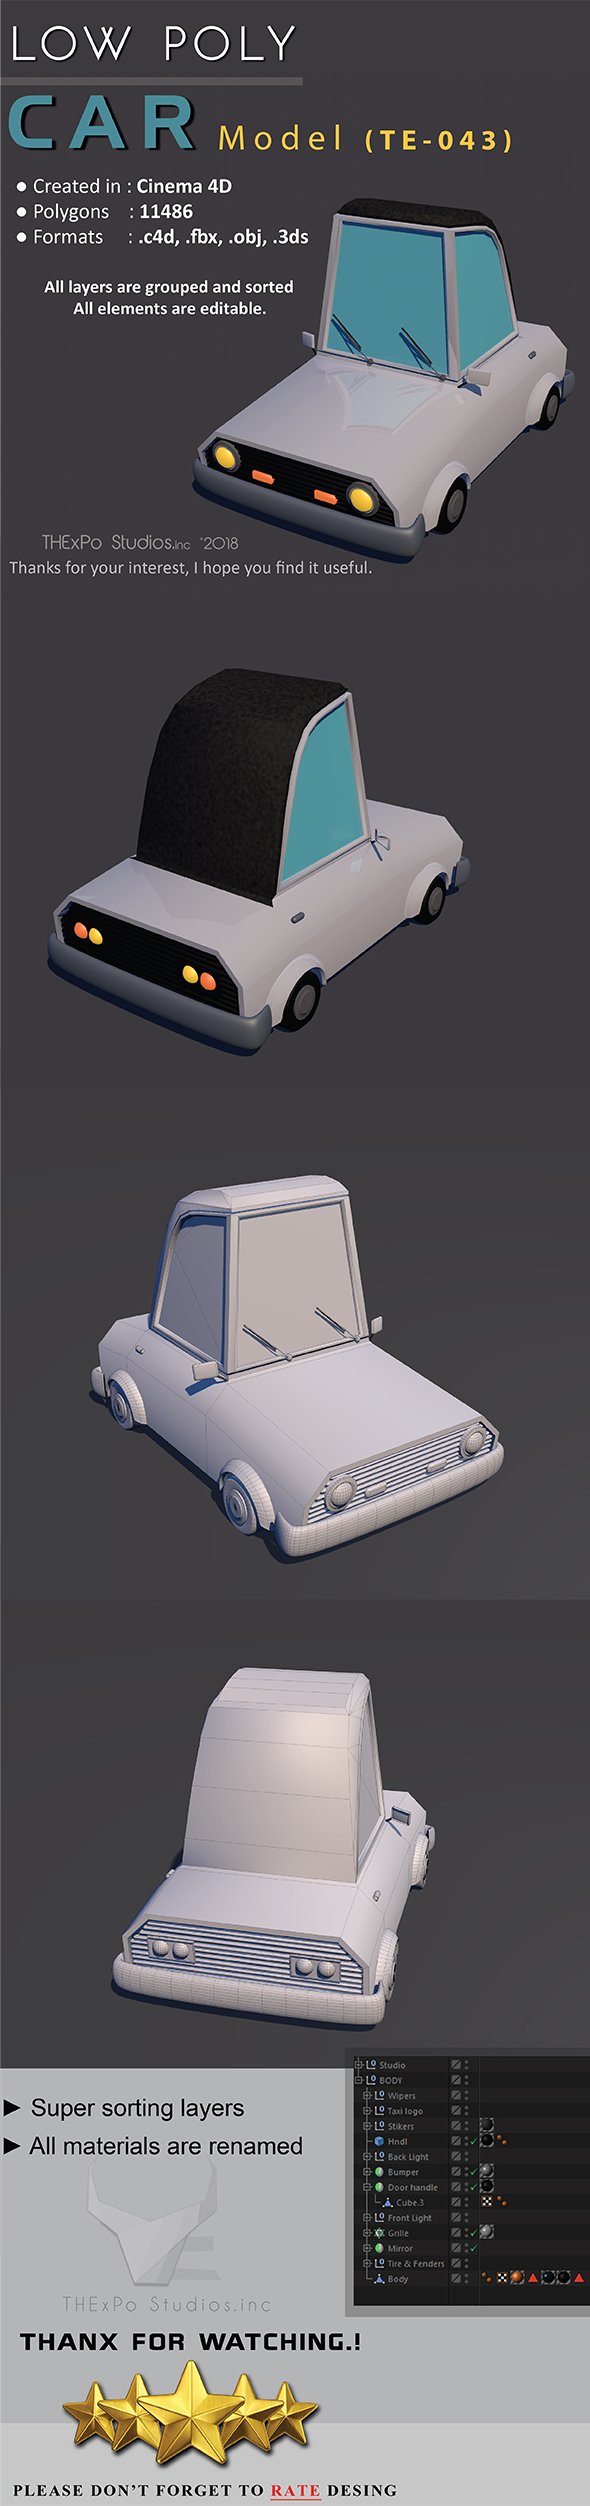 Low Poly Car || Model TE-043 - 3DOcean Item for Sale